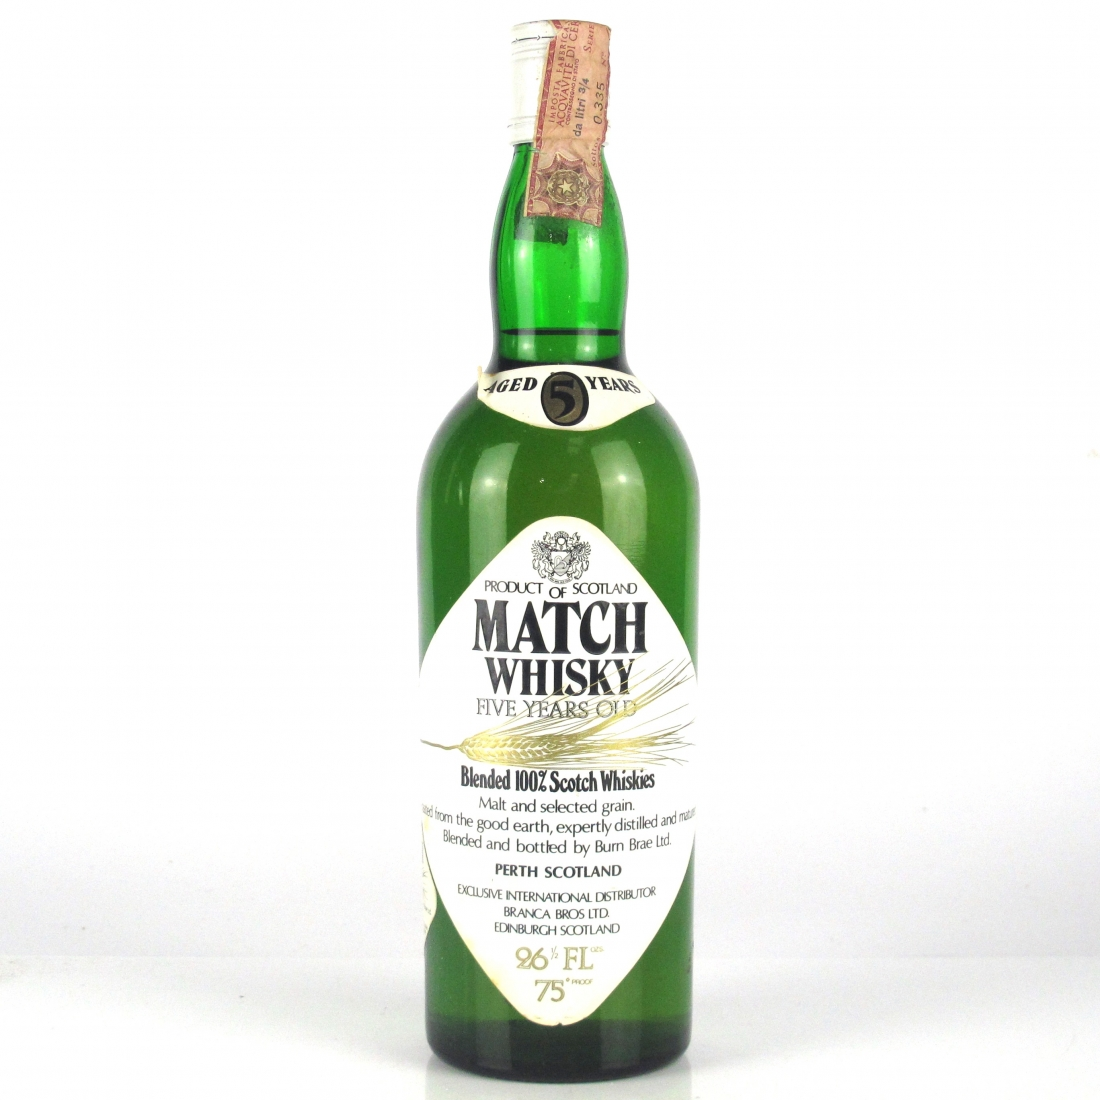 Match Whisky 5 Year Old 1970s